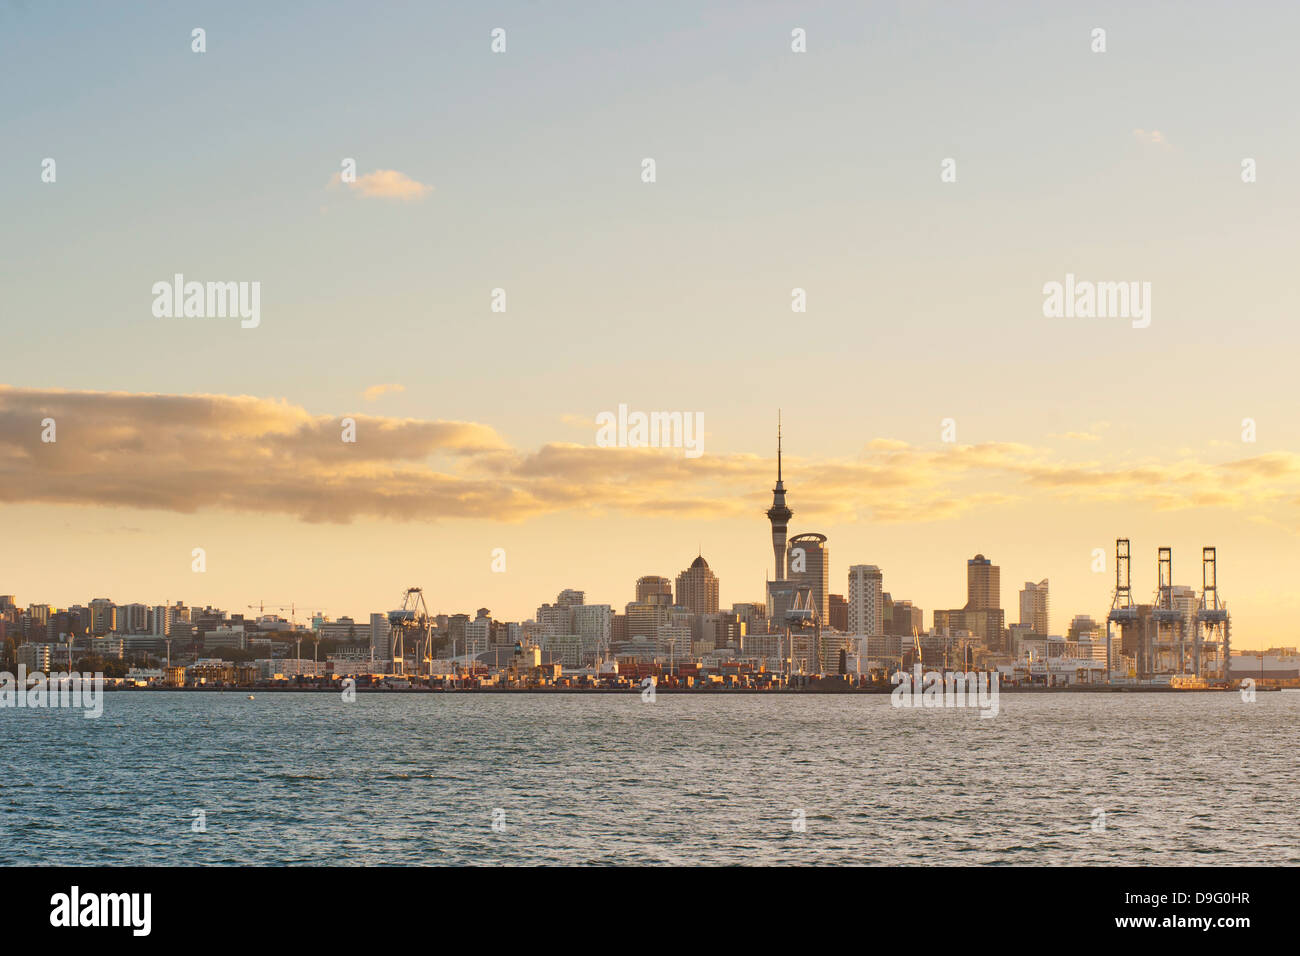 Auckland city skyline at sunset, Auckland, North Island, New Zealand - Stock Image